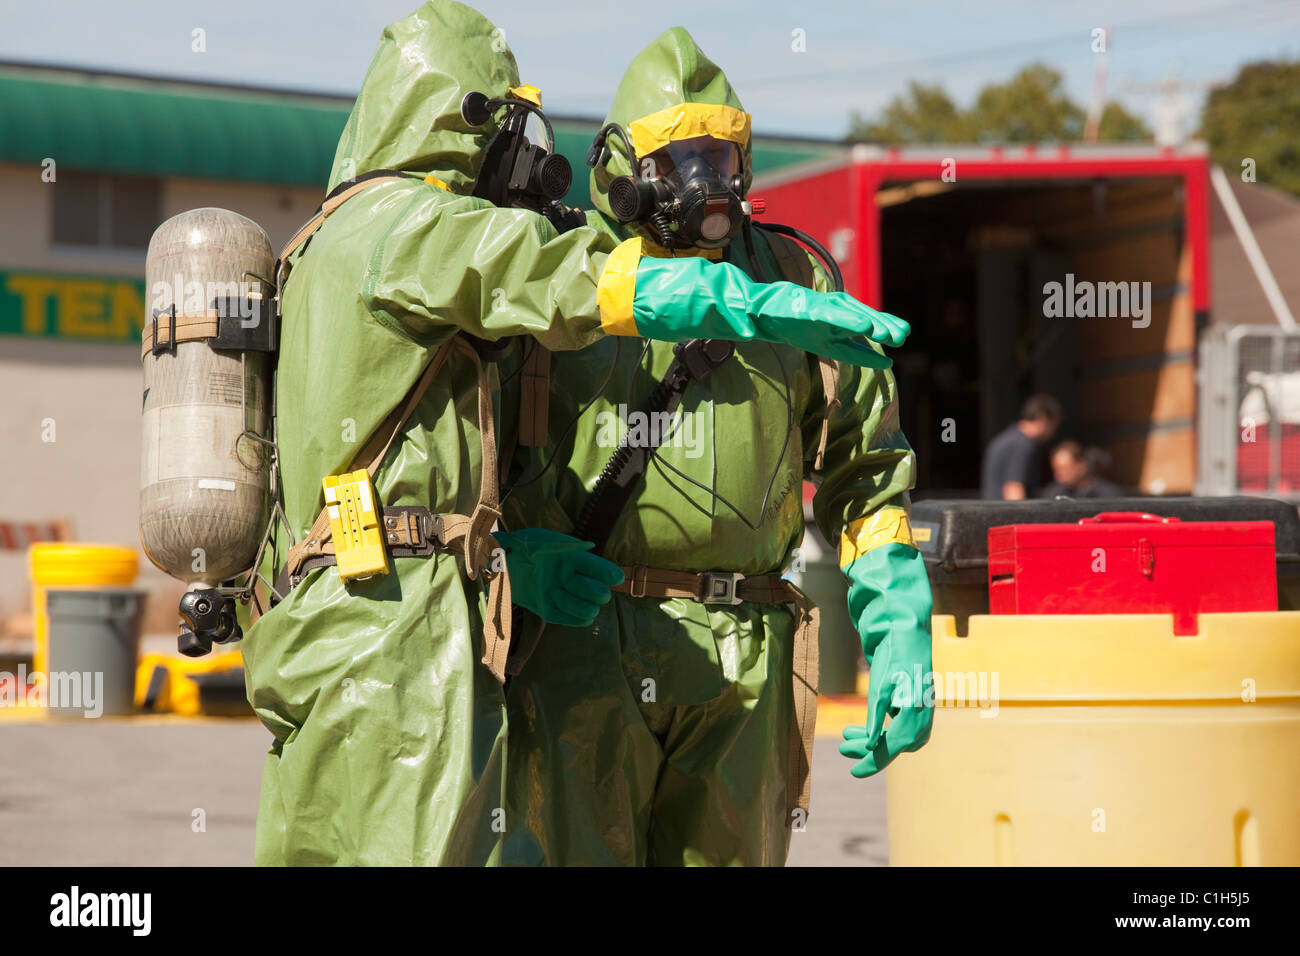 HazMat firefighters standing together - Stock Image